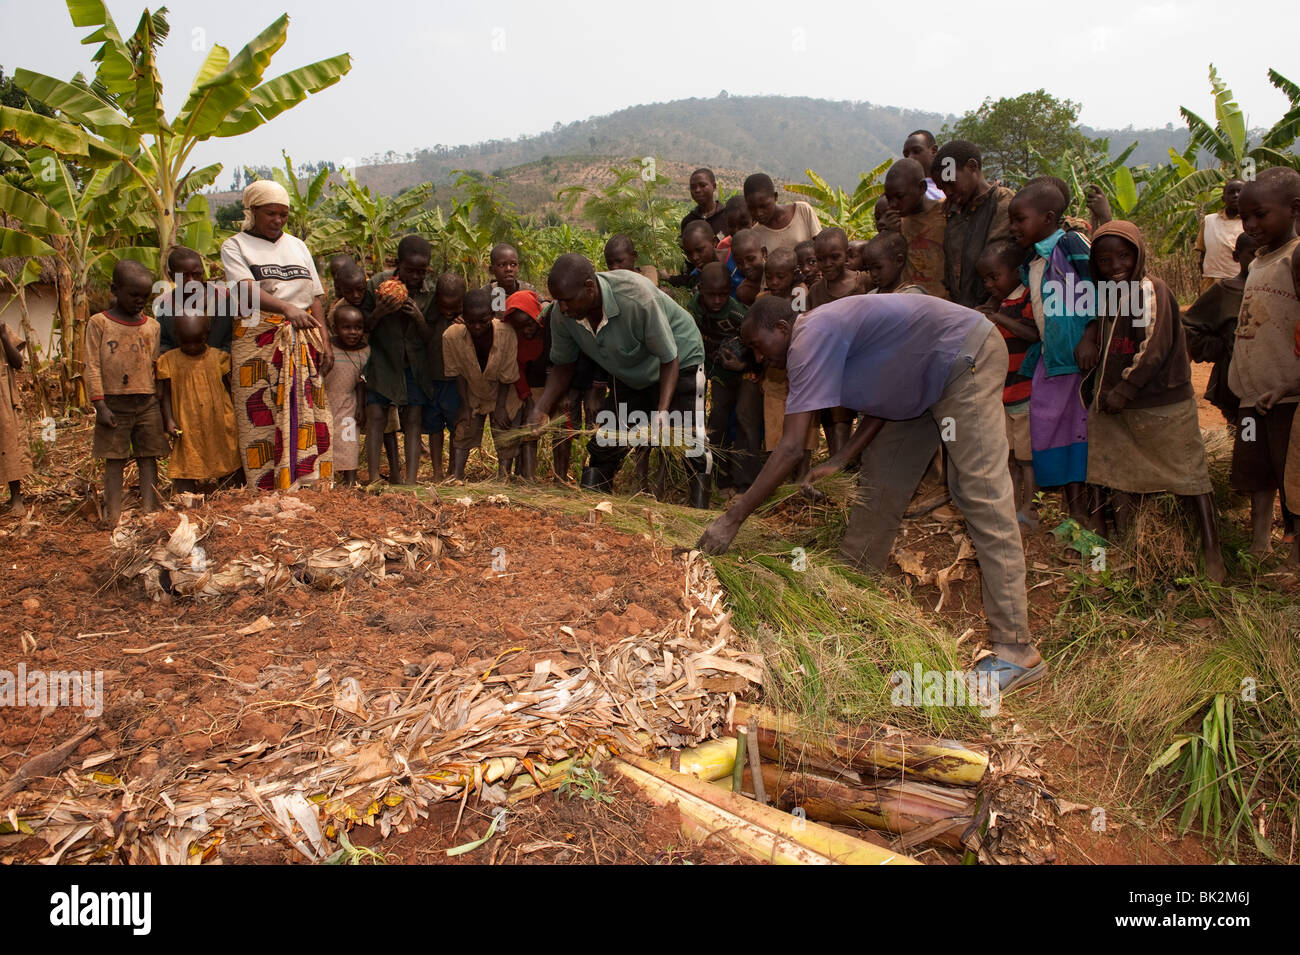 Farmer and local Aid worker building a keyhole garden whilst community watch on and learn. Rwanda. Stock Photo